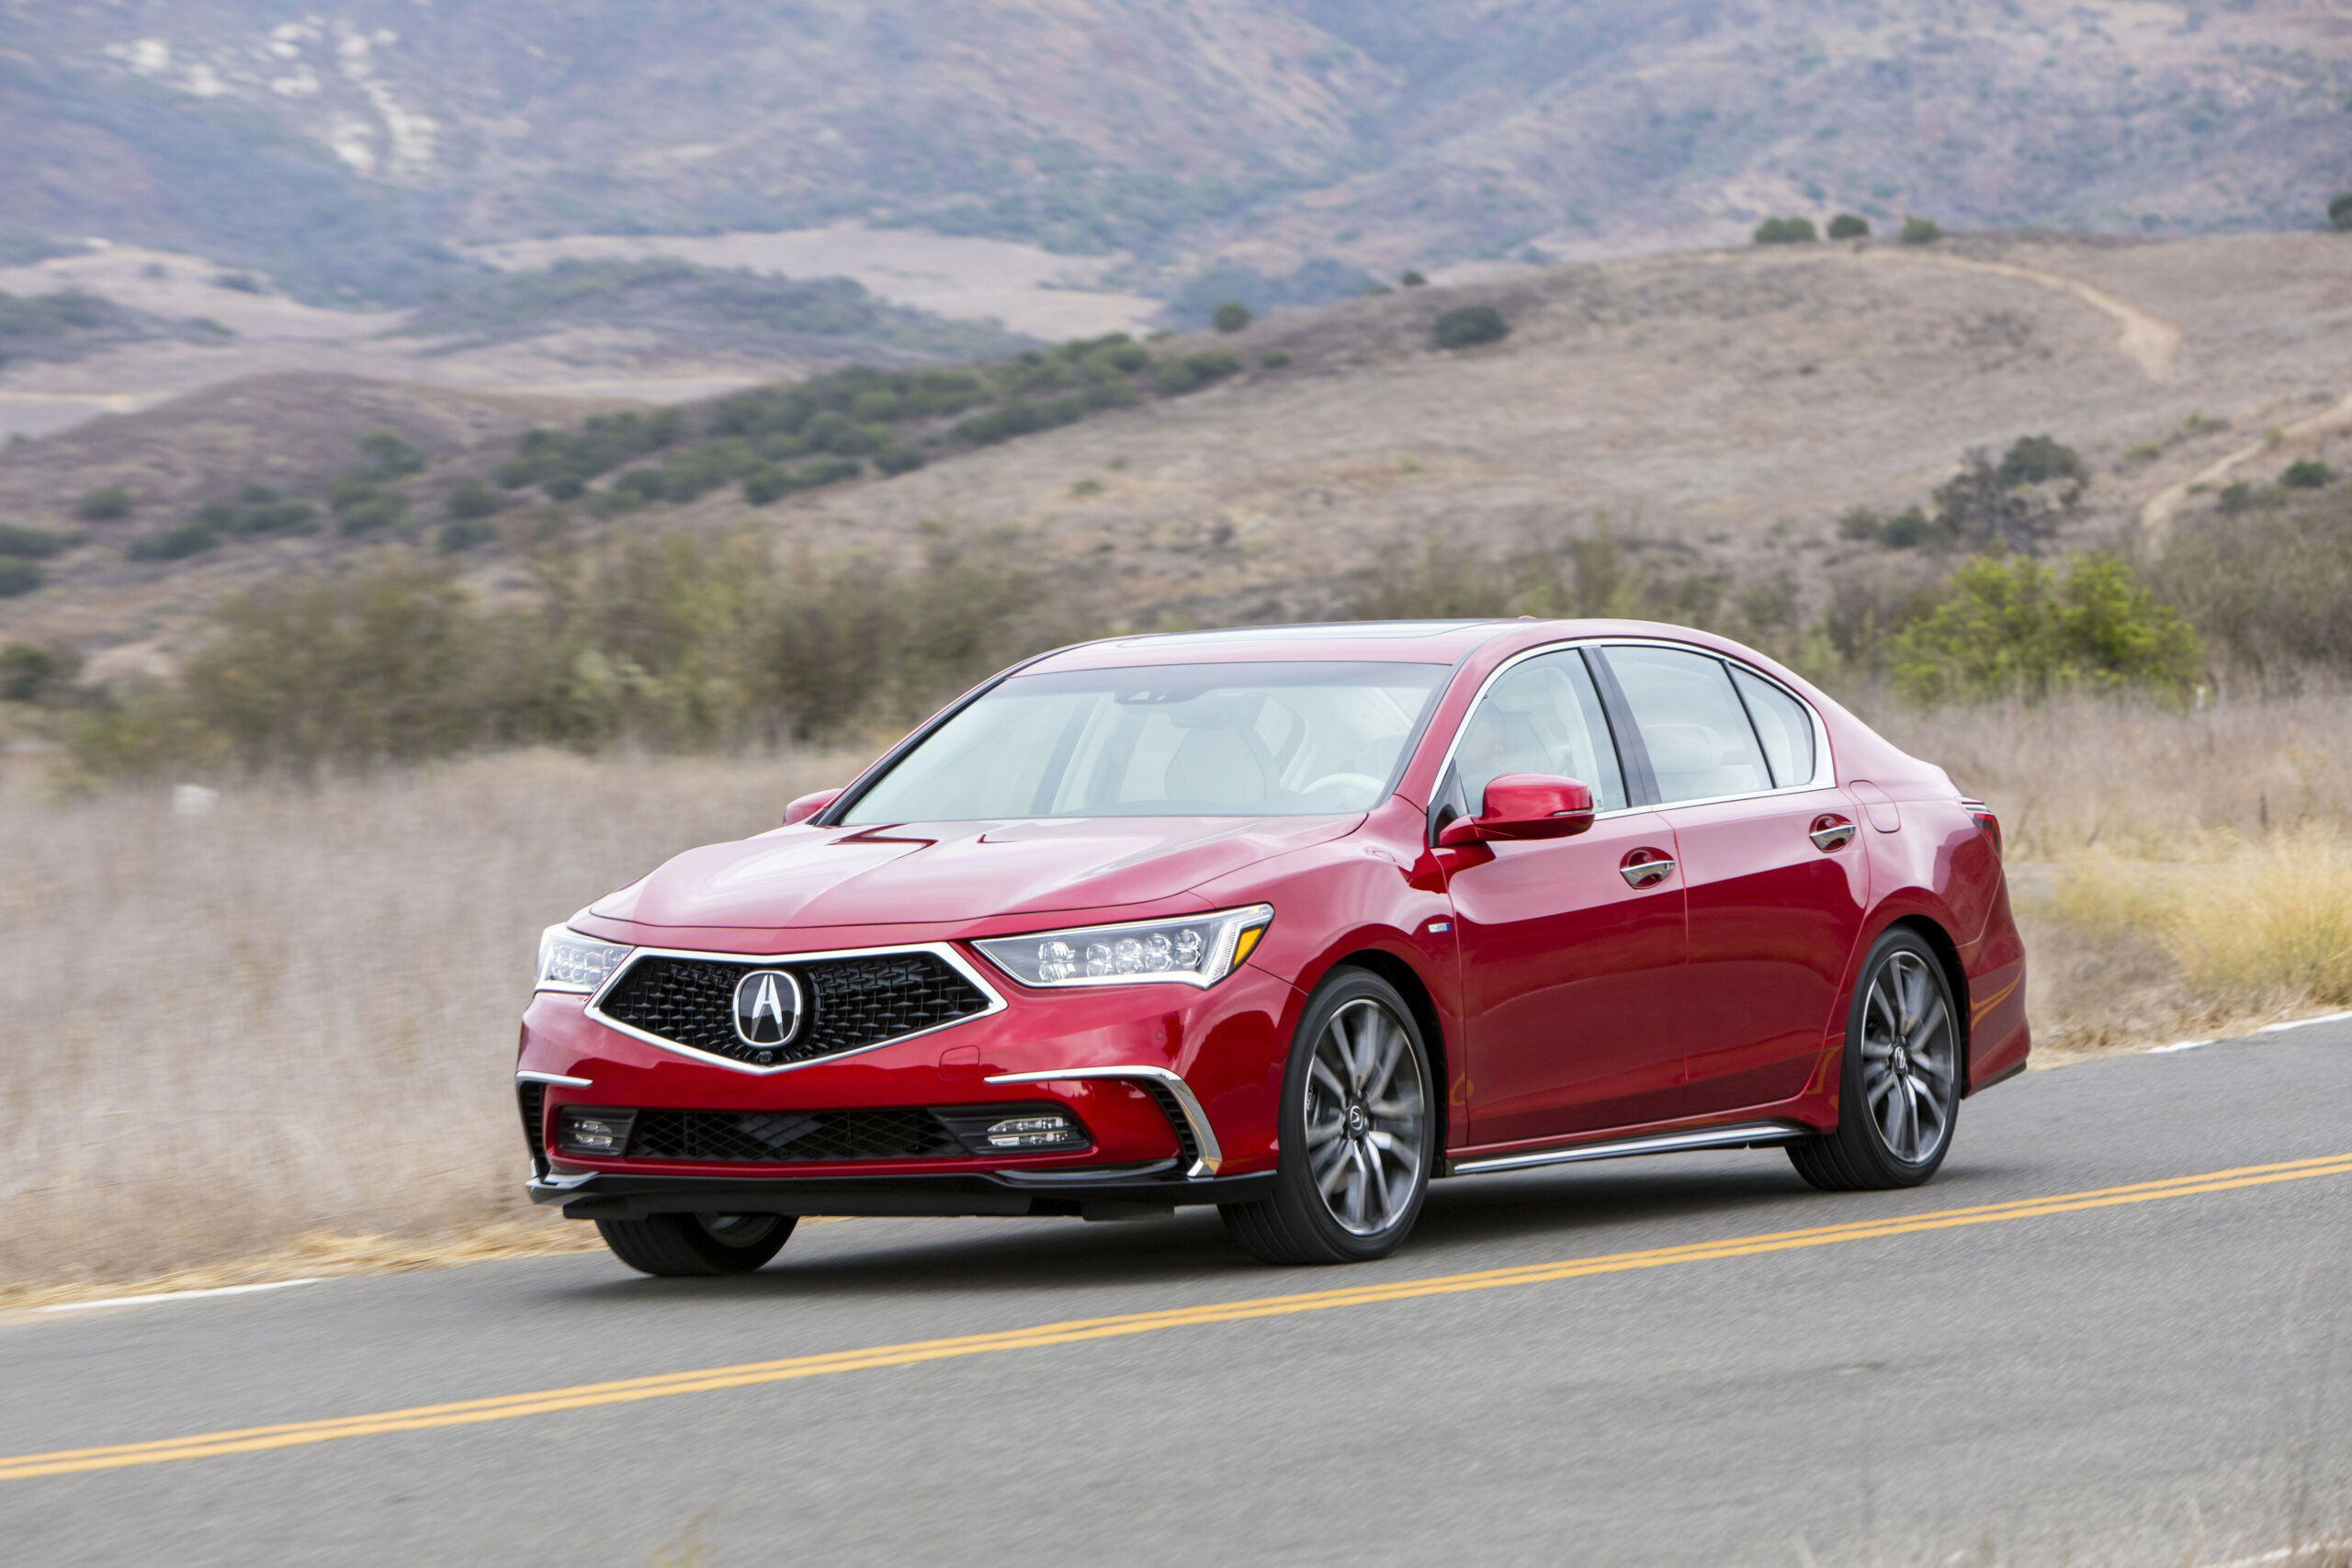 12 Acura RLX Review, Pricing, and Specs - 2020 acura car videos you youtube